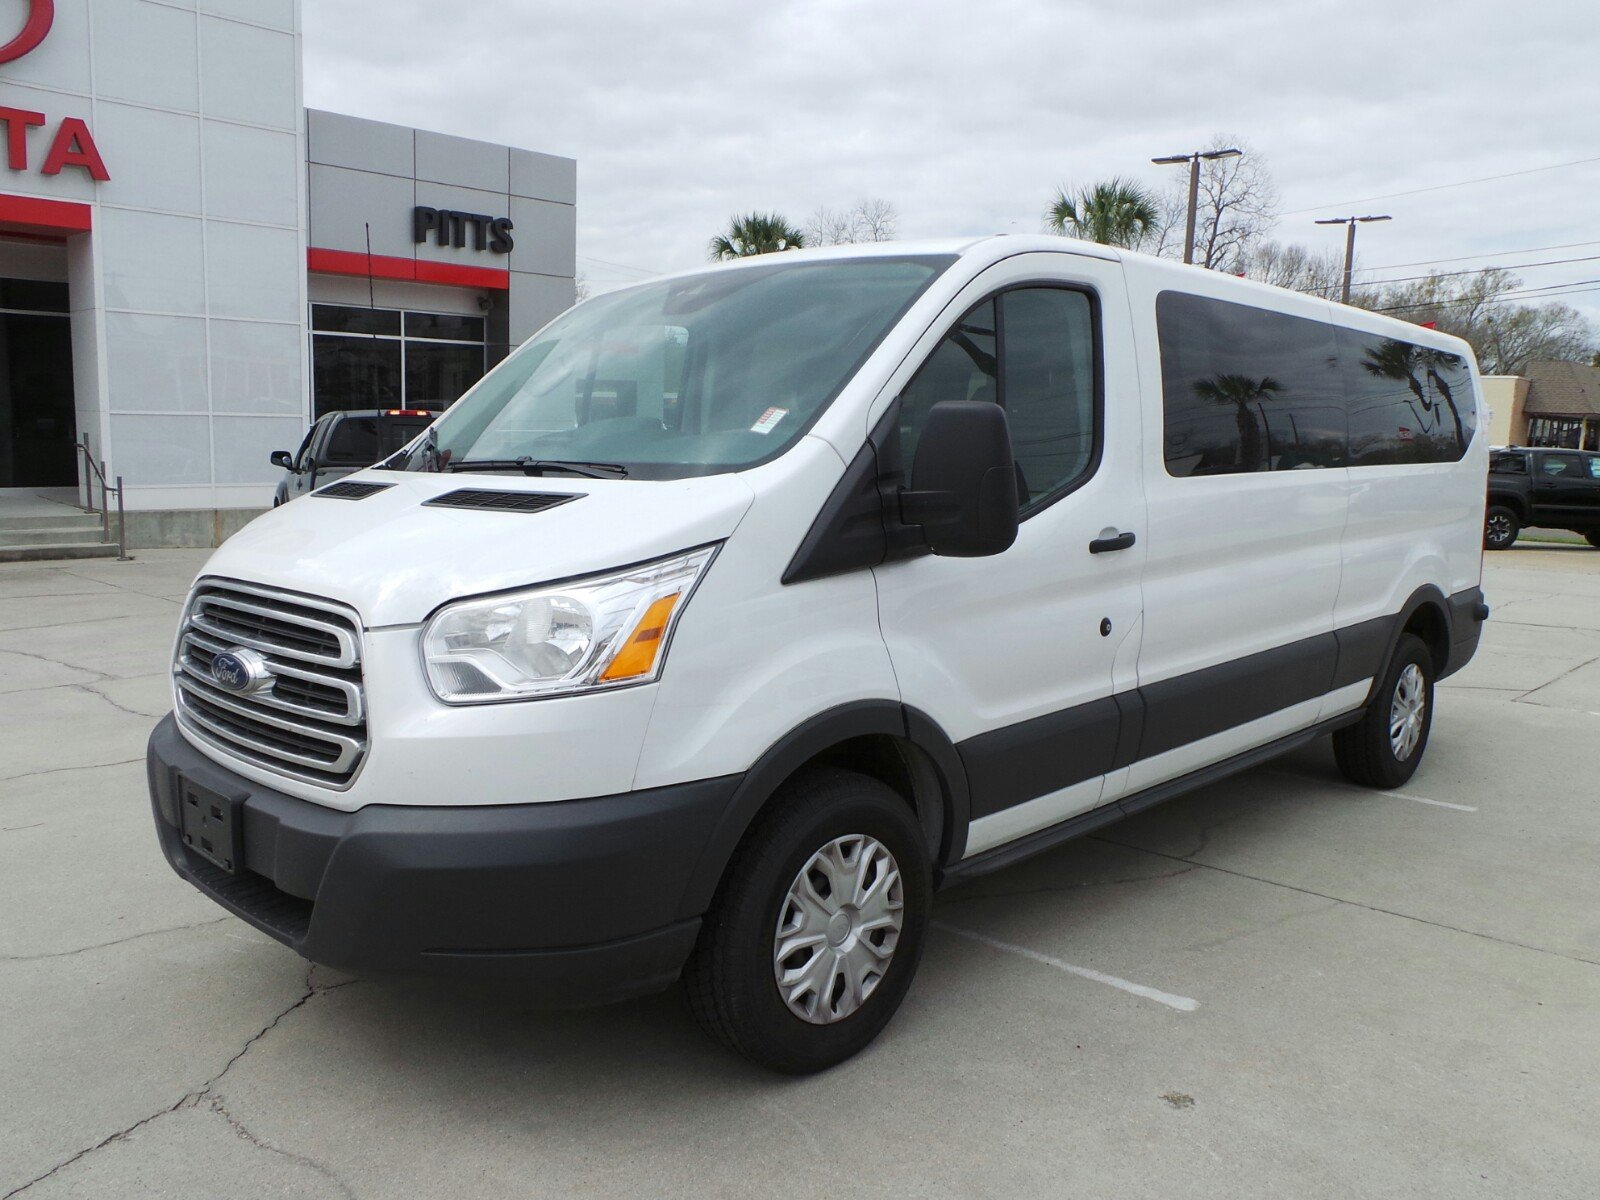 full ford surprisingly wagon good passenger hightechdad a transit xlt van vacation